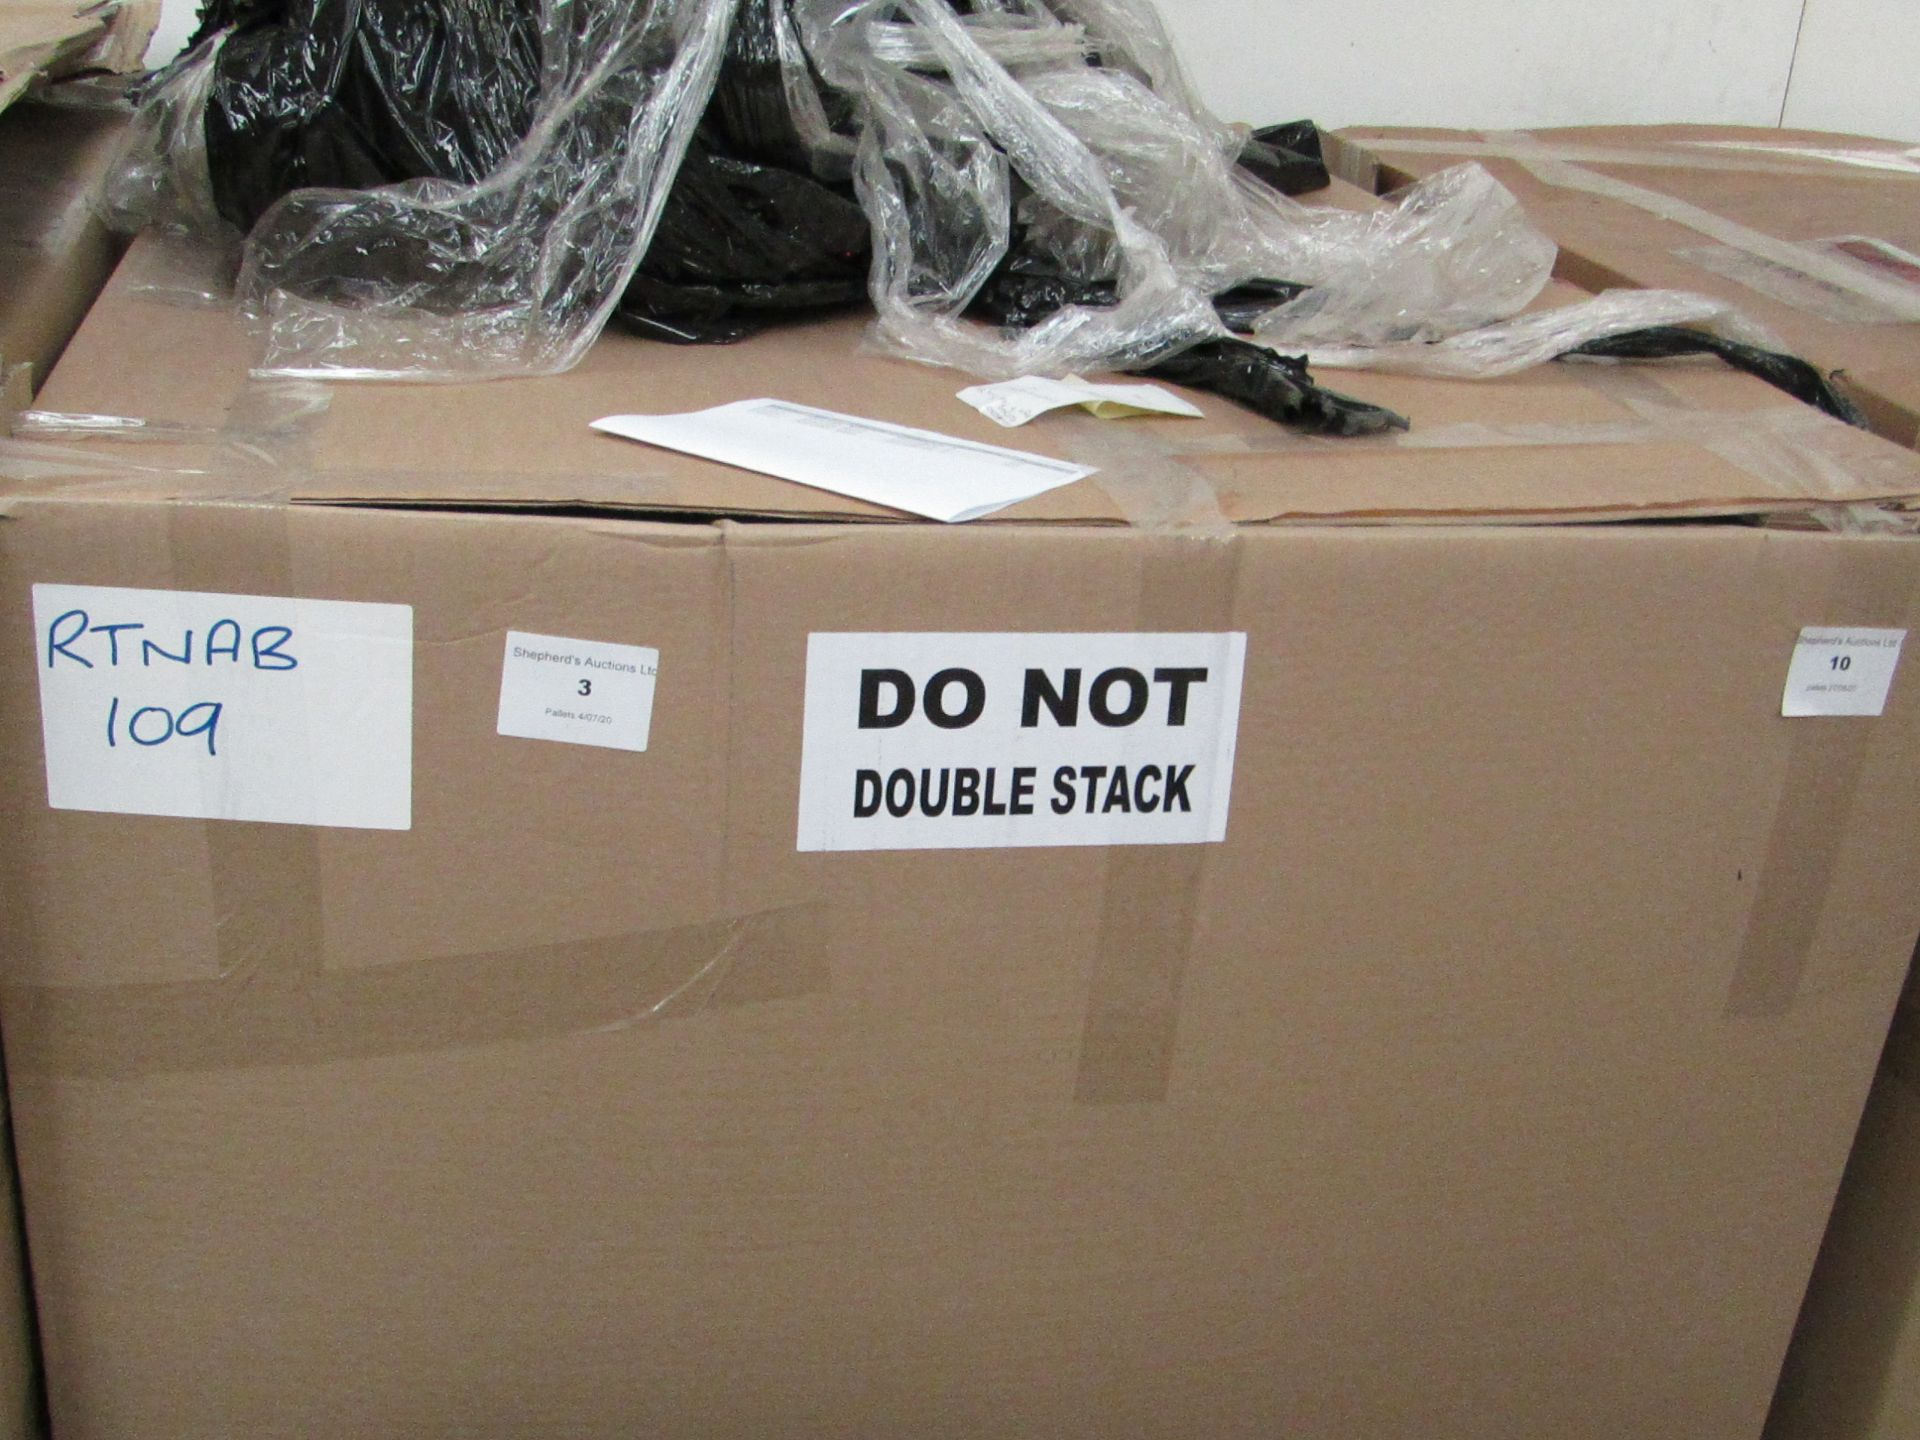 | 1x | PALLET OF APPROX 34 AIRBEDS | UNCHECKED CUSTOMER RETURNS | REF RTNAB109 | please note that